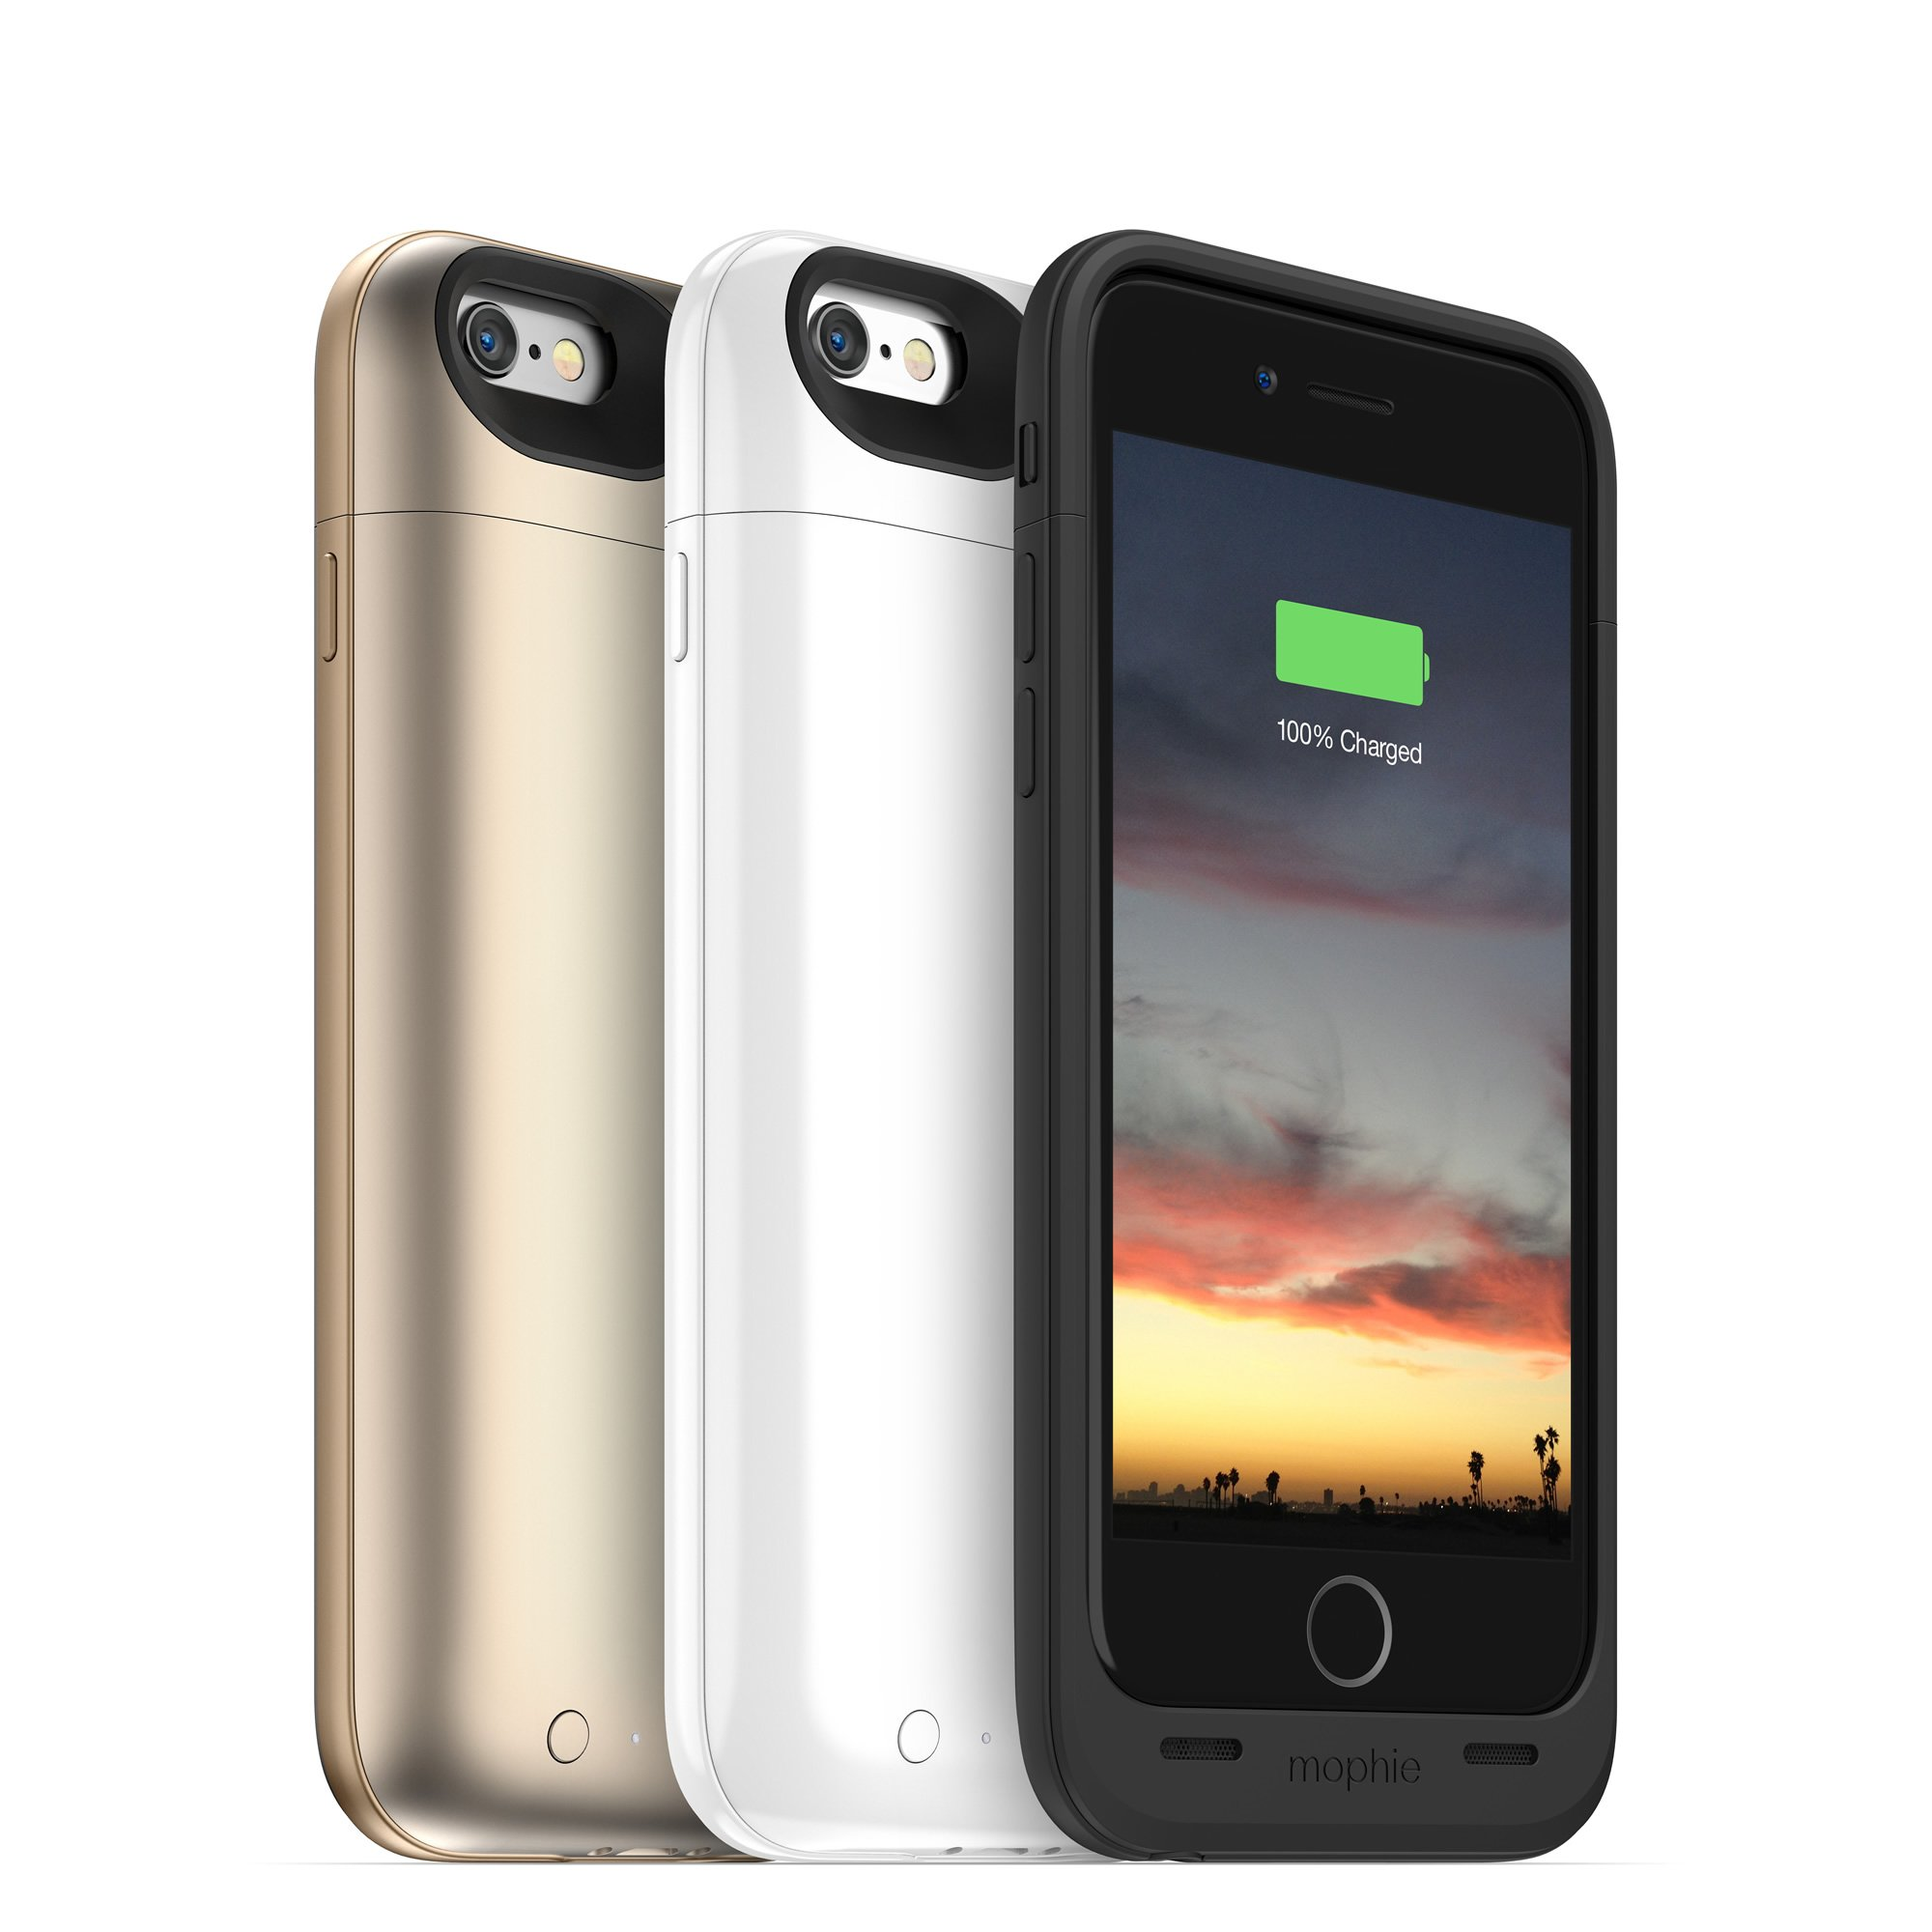 mophie juice pack air - Slim Protective Mobile Battery Pack Case for iPhone 6/6s - Black by mophie (Image #7)